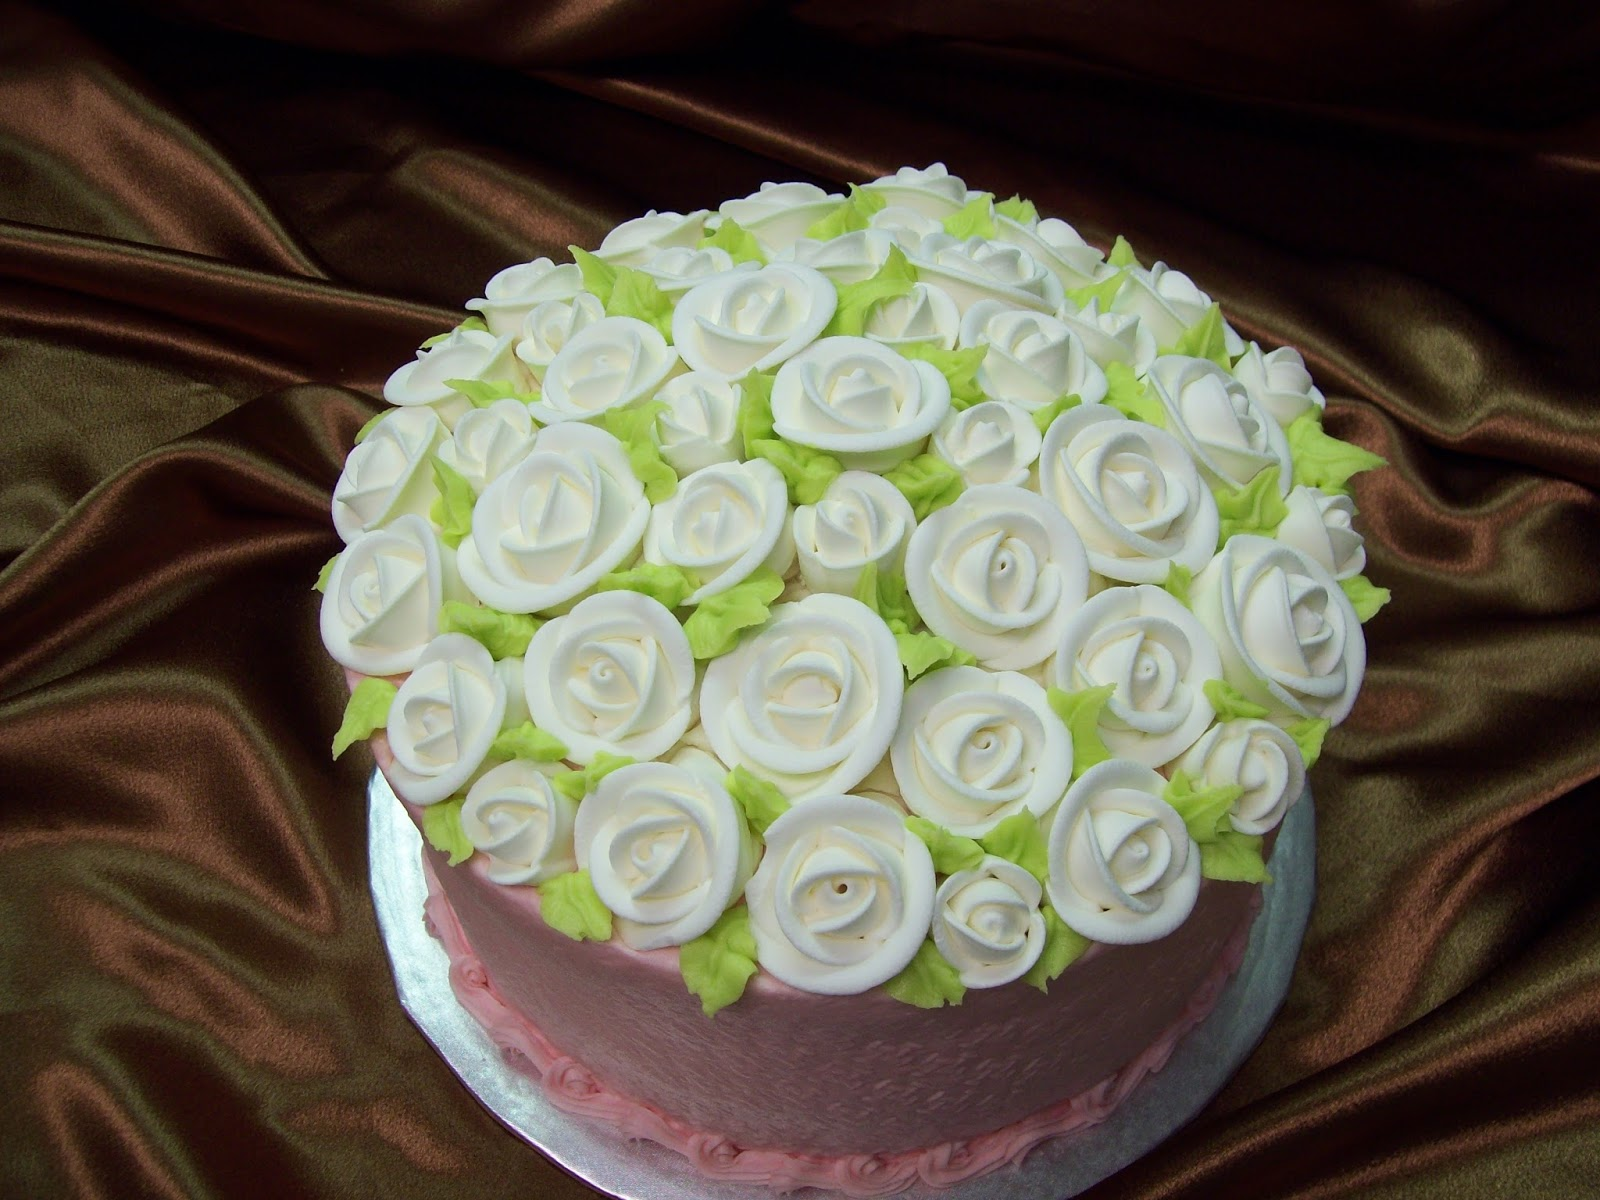 Send Cake From Best Online Cake Shop With Variety Of Cakes